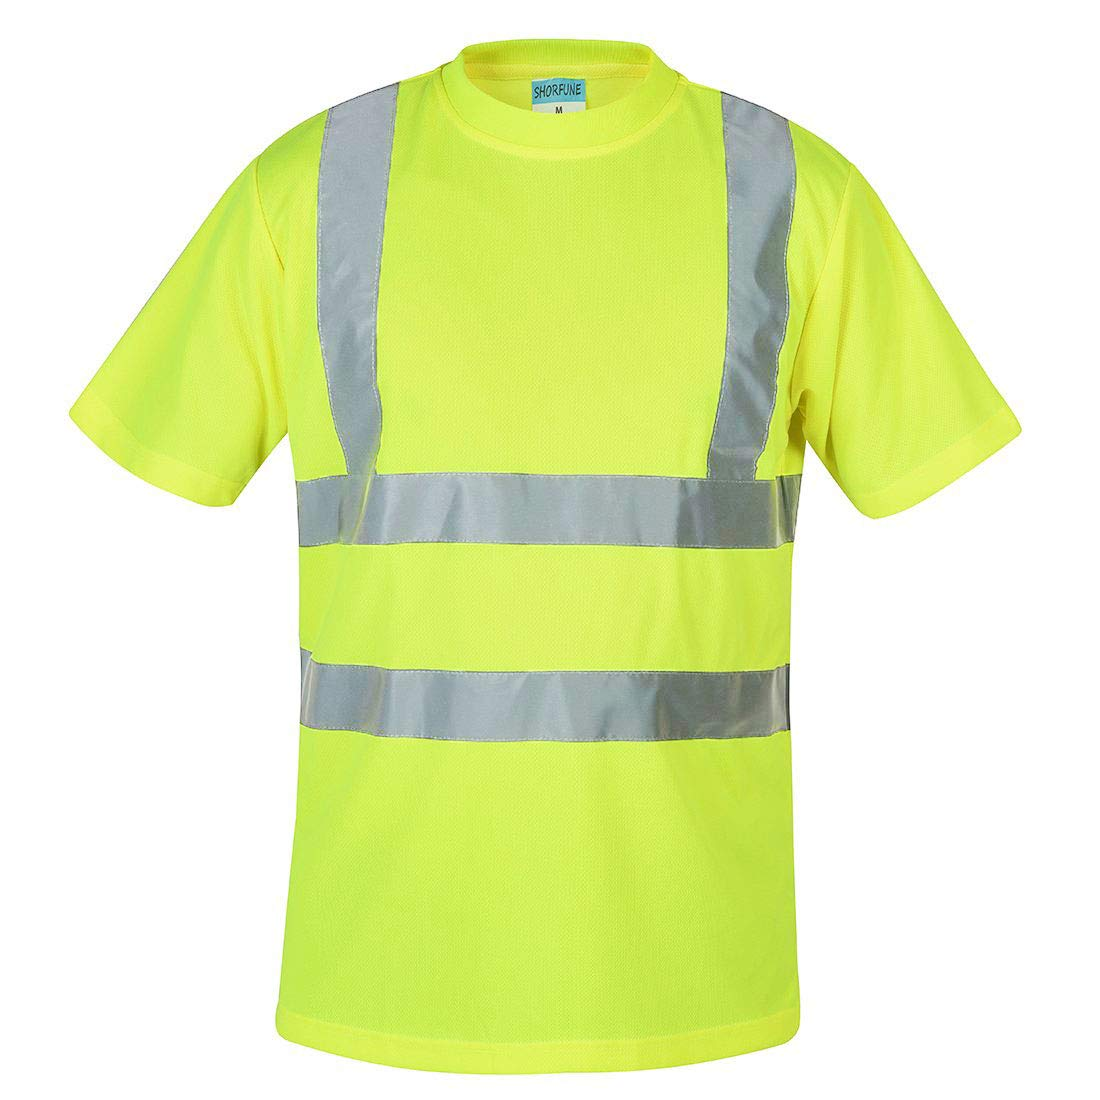 SHORFUNE High Visibility T-Shirt with Short Sleeve, Reflective Strips, Yellow, ANSI/ISEA Standards, XL